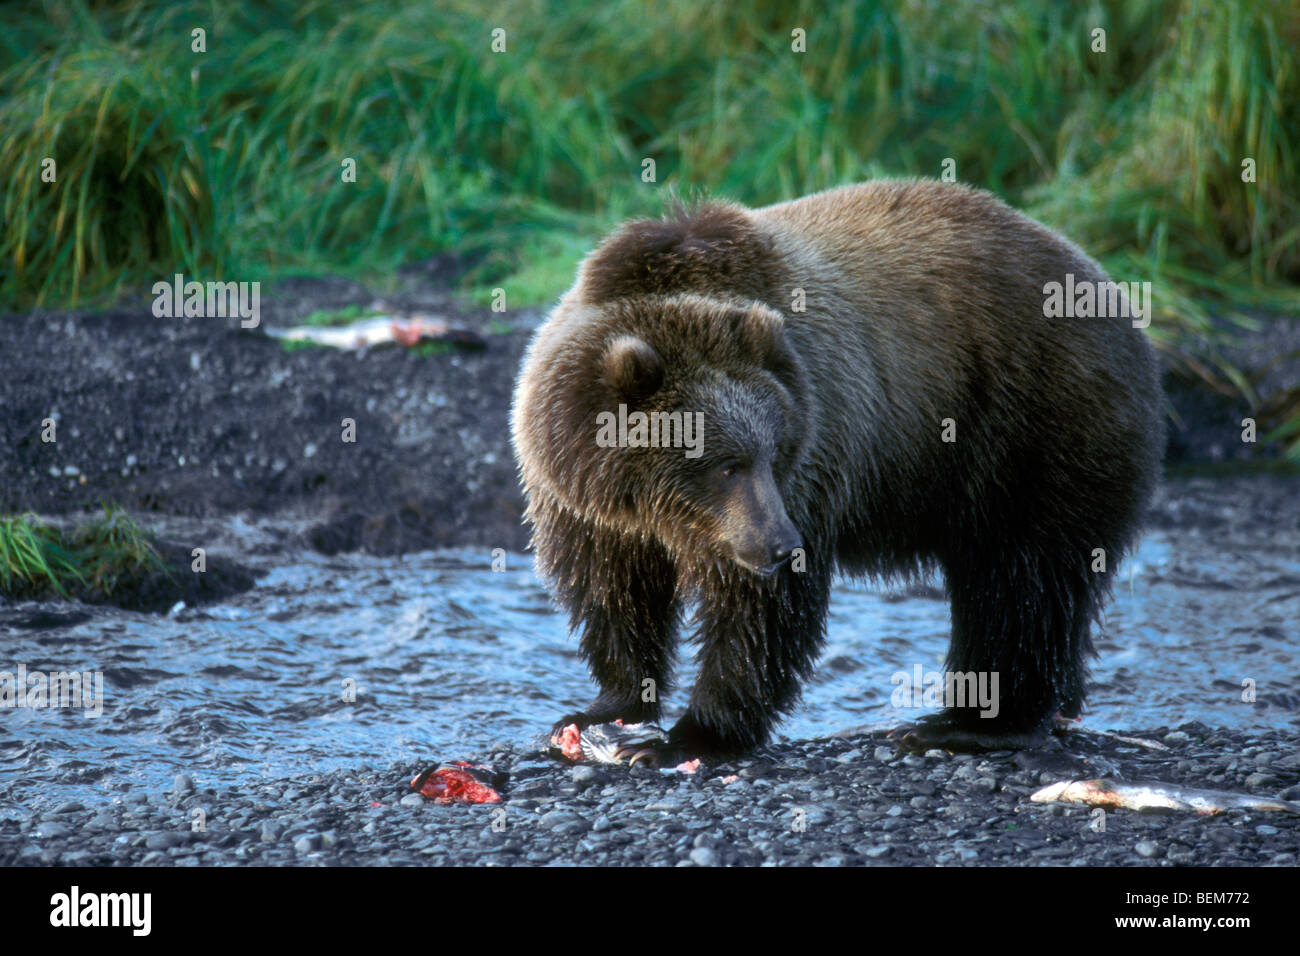 kodiak-brown-bear-ursus-arctos-middendor